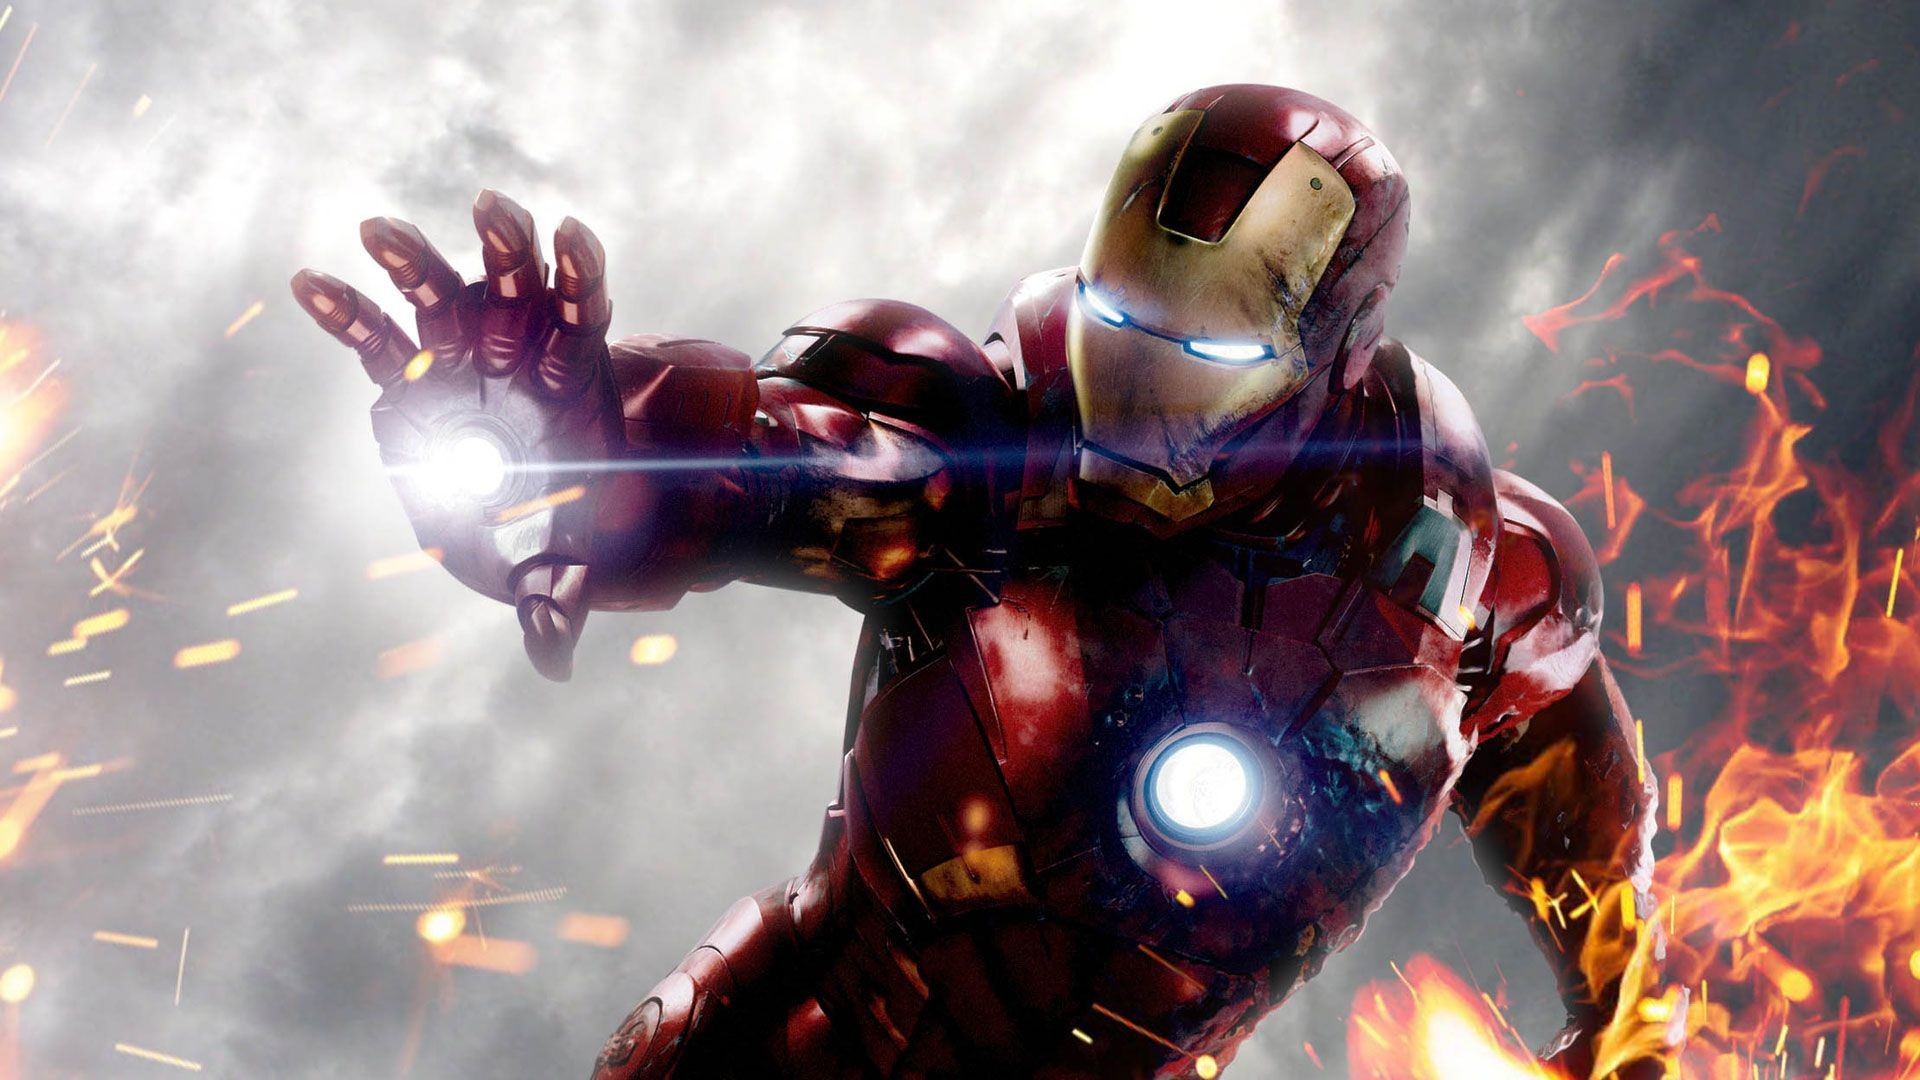 Ironman Wallpaper Iron Man In Action In The Fire 1920?1080 .